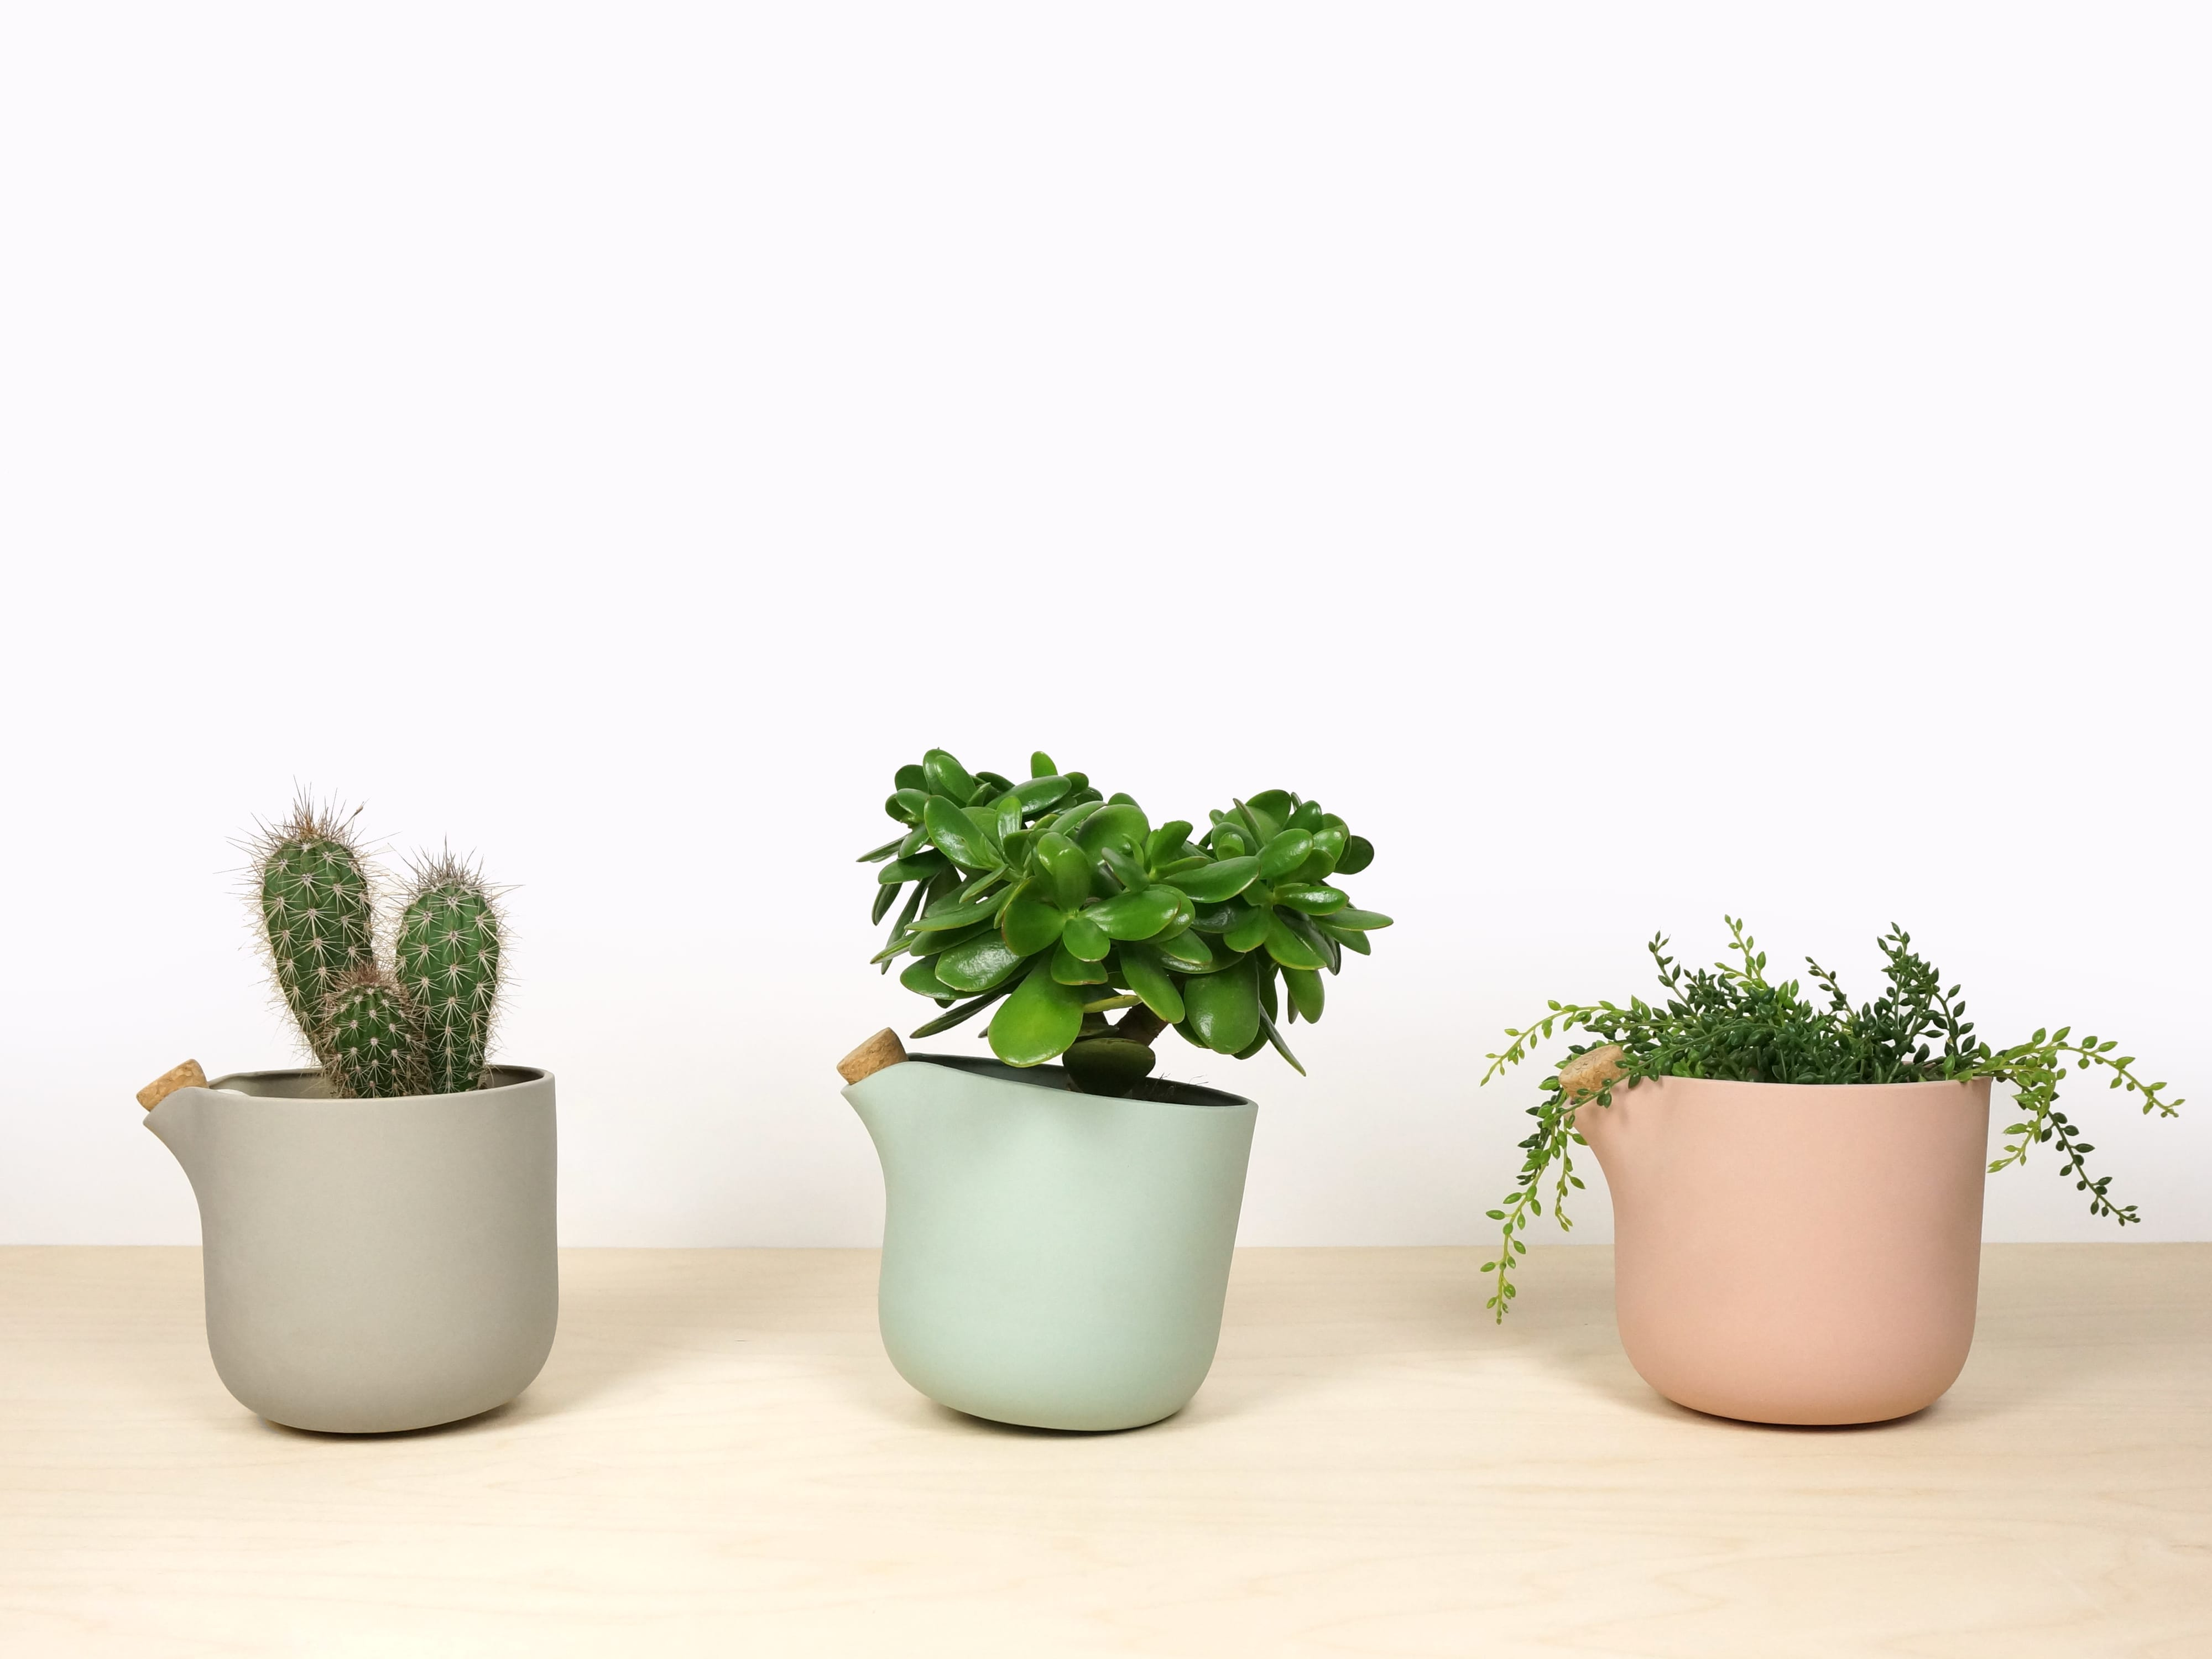 7 self-watering planters to kickstart your spring